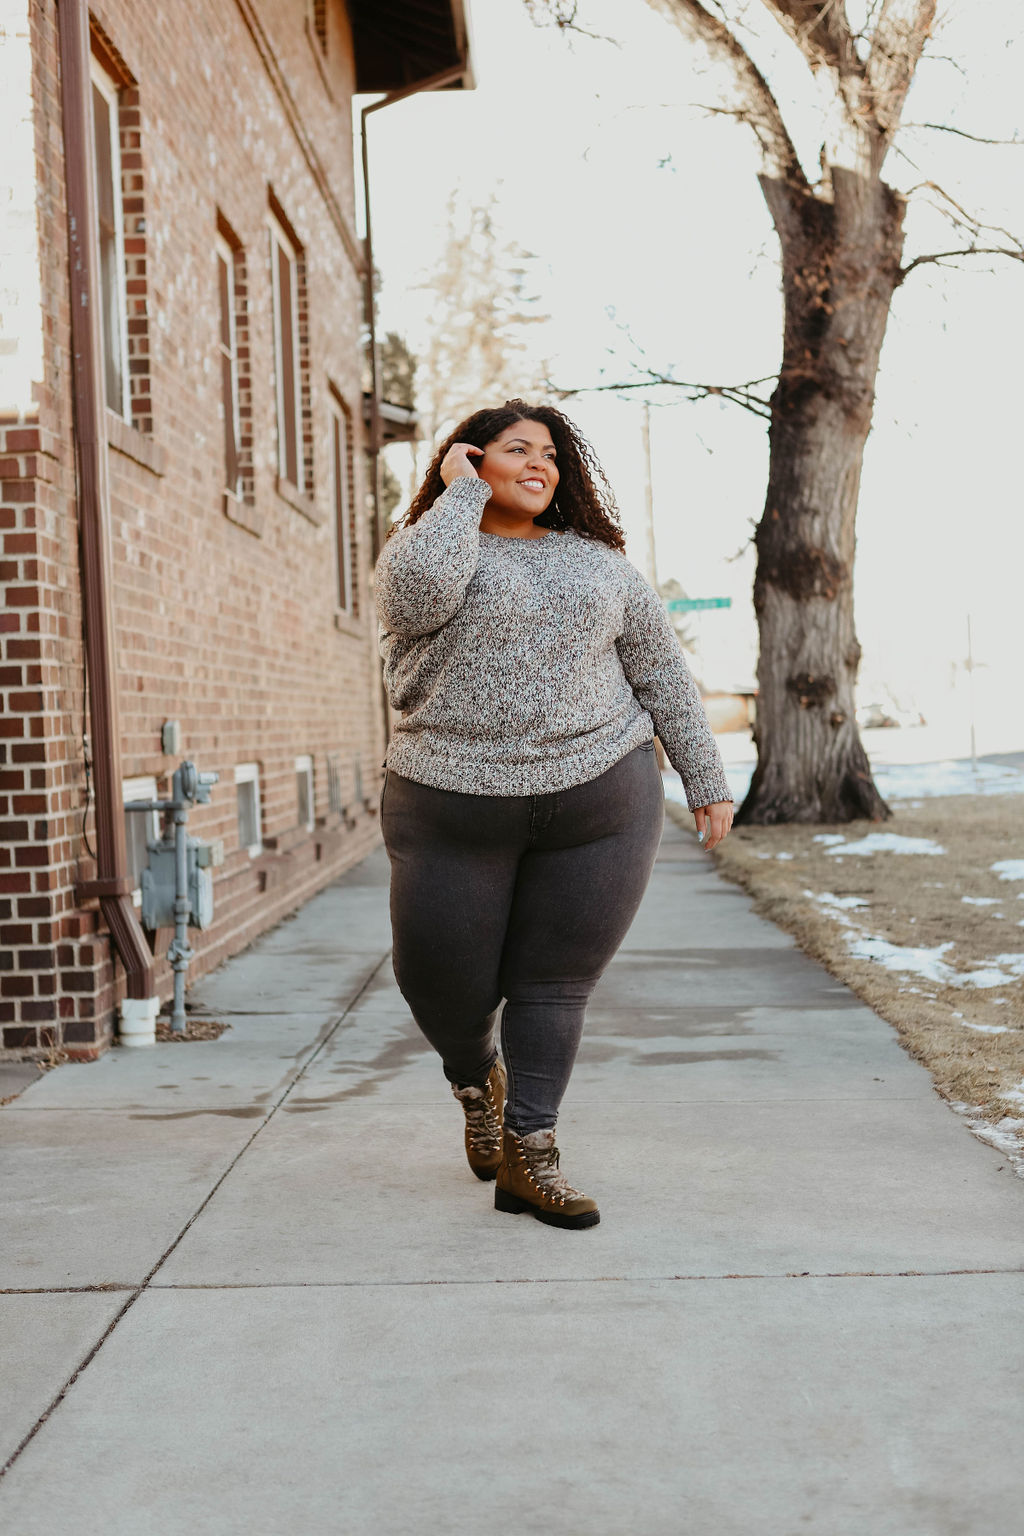 I'm talking about Levi's 720 jeans that fit just right, a perfect pair of boots w/ the fur, &, of course, a super-cozy sweater. It's my ideal winter weekend outfit.